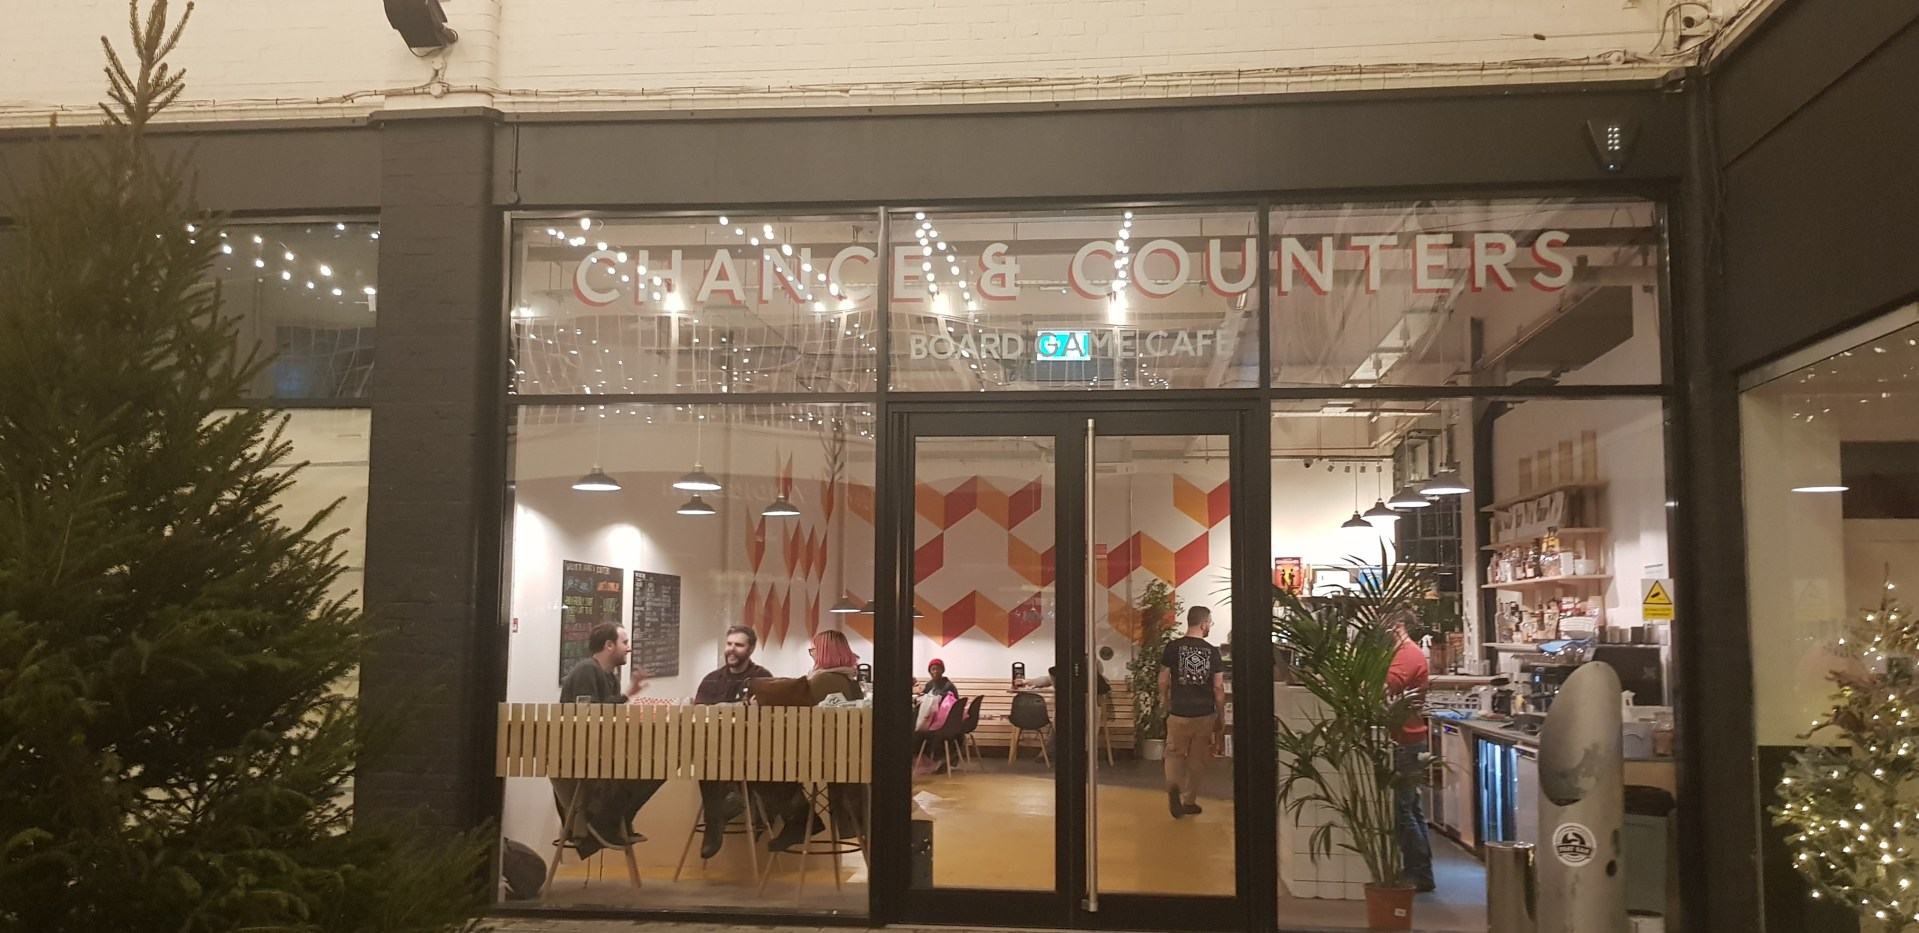 What I Ate Wednesday   Chance & Counters – Board Game Café in Digbeth, Birmingham